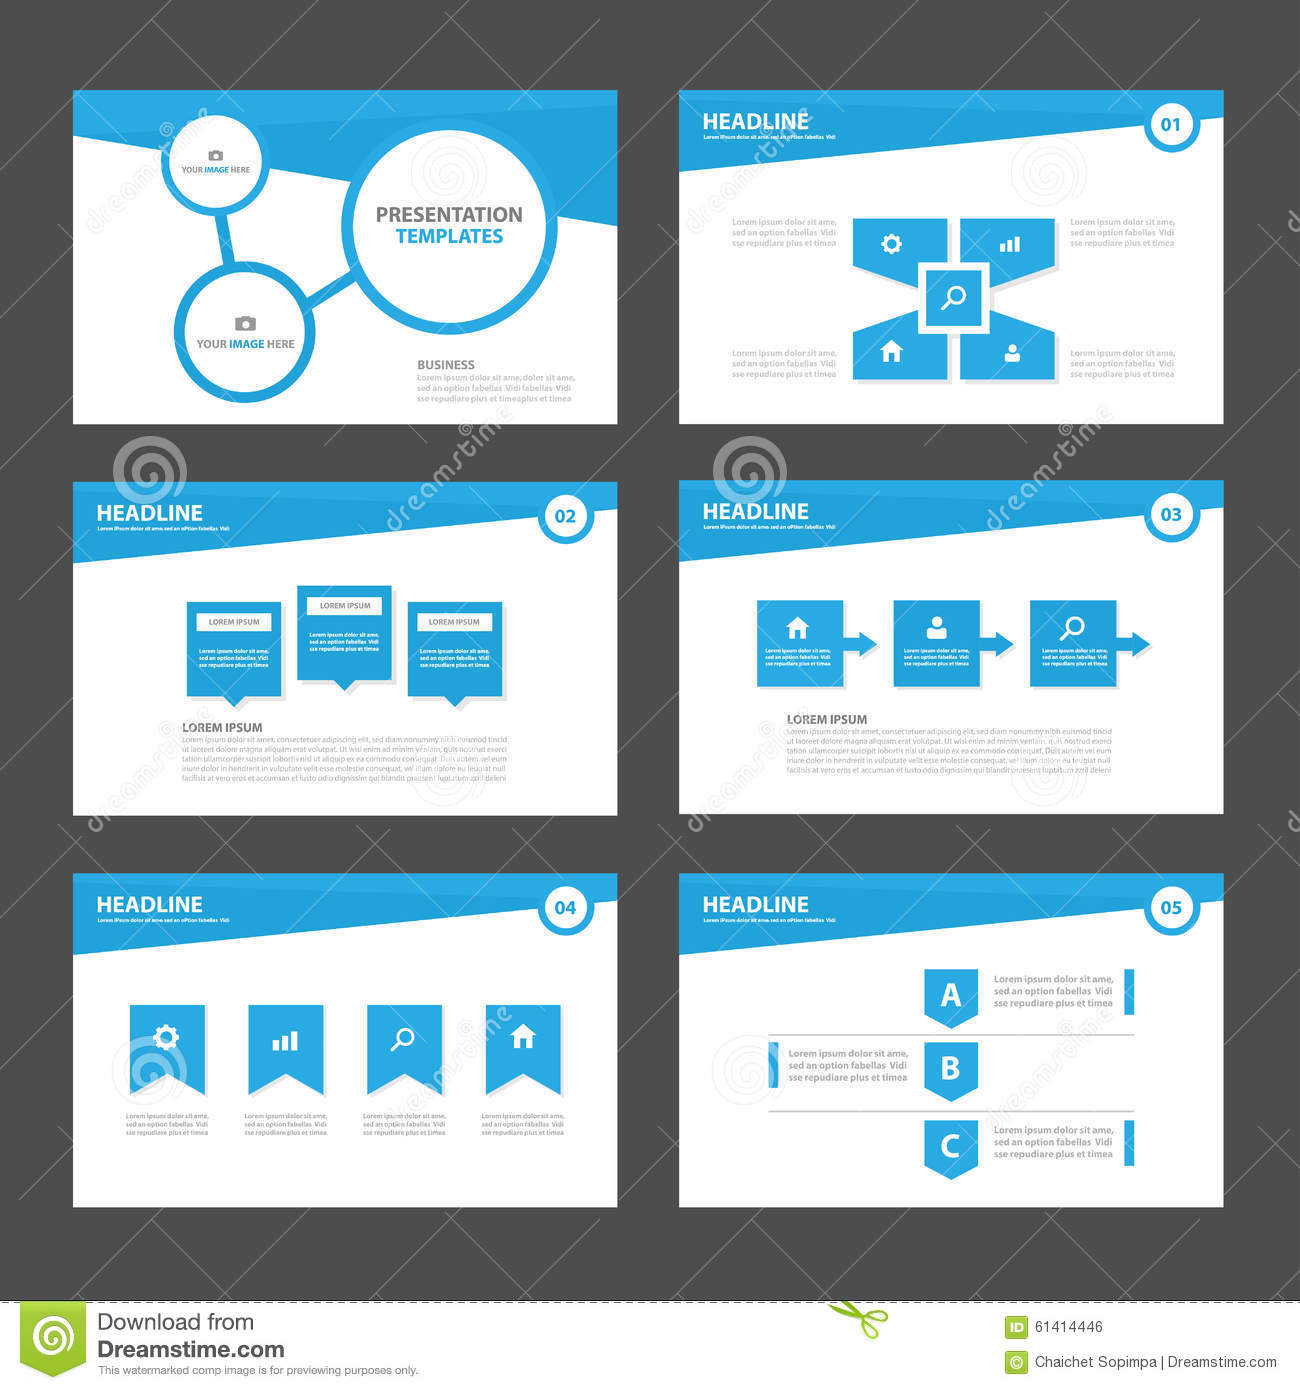 Blue Infographic elements and icon presentation template flat design set for advertising marketing brochure flyer leaflet